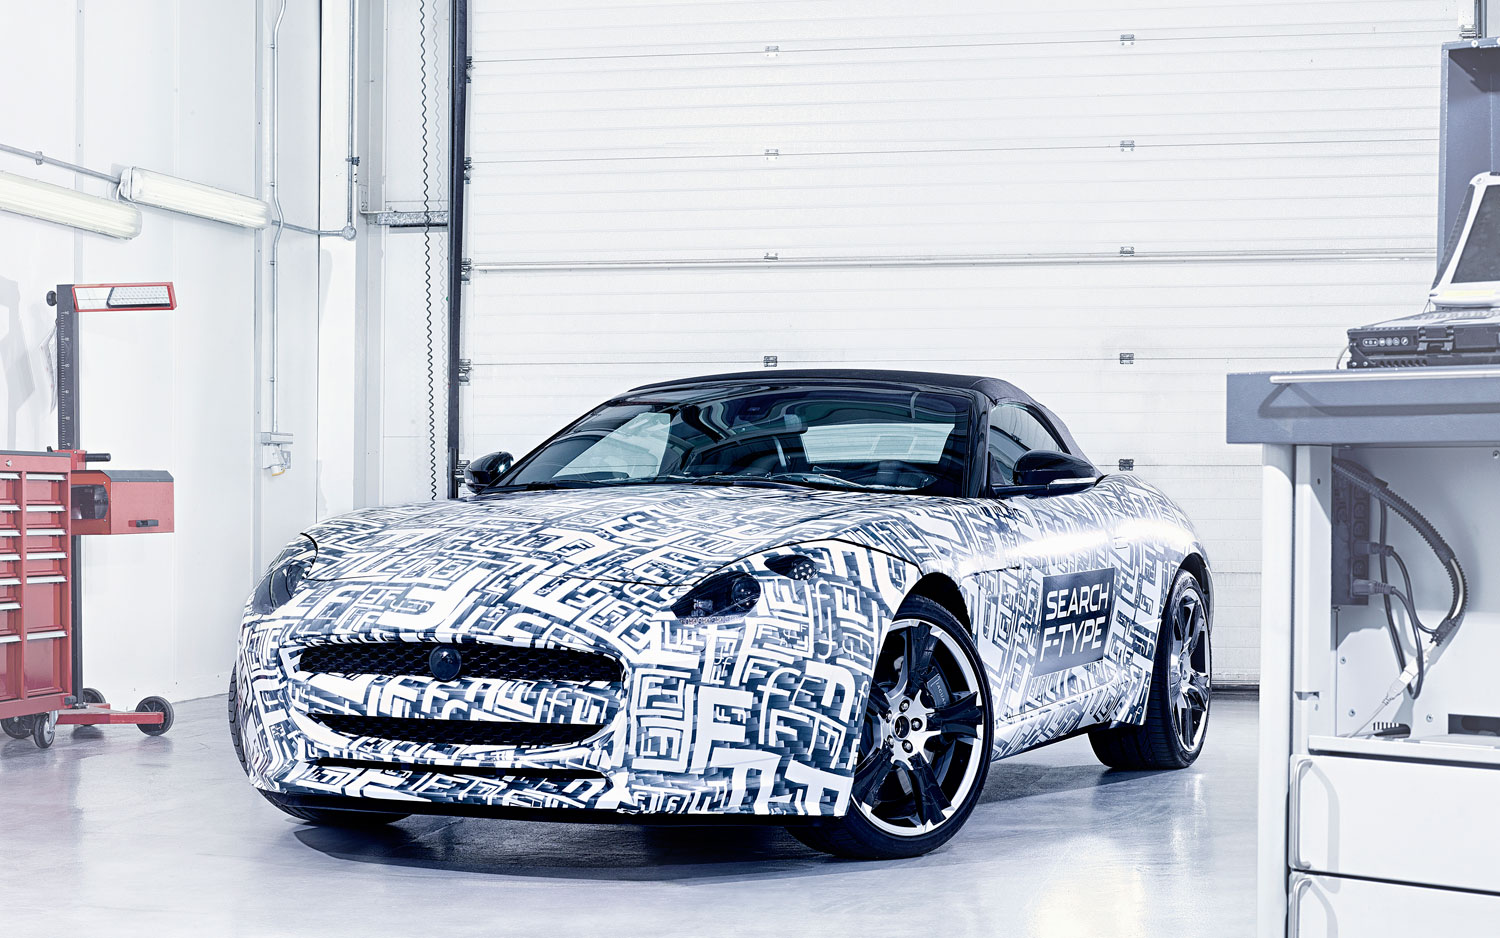 2014 Jaguar F Type Roadster Prototype Front Three Quarters View1